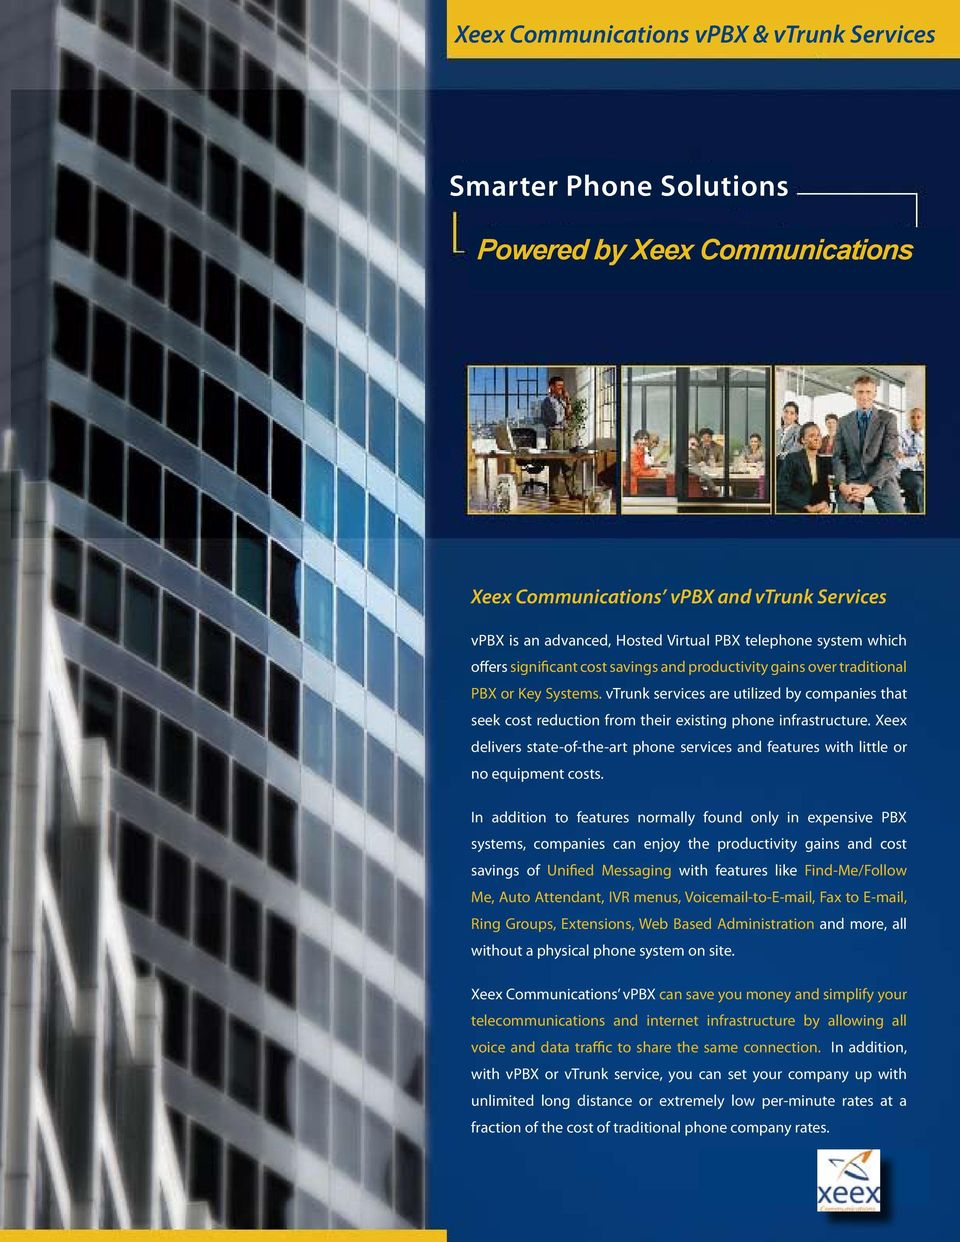 vtrunk services are utilized by companies that seek cost reduction from their existing phone infrastructure.